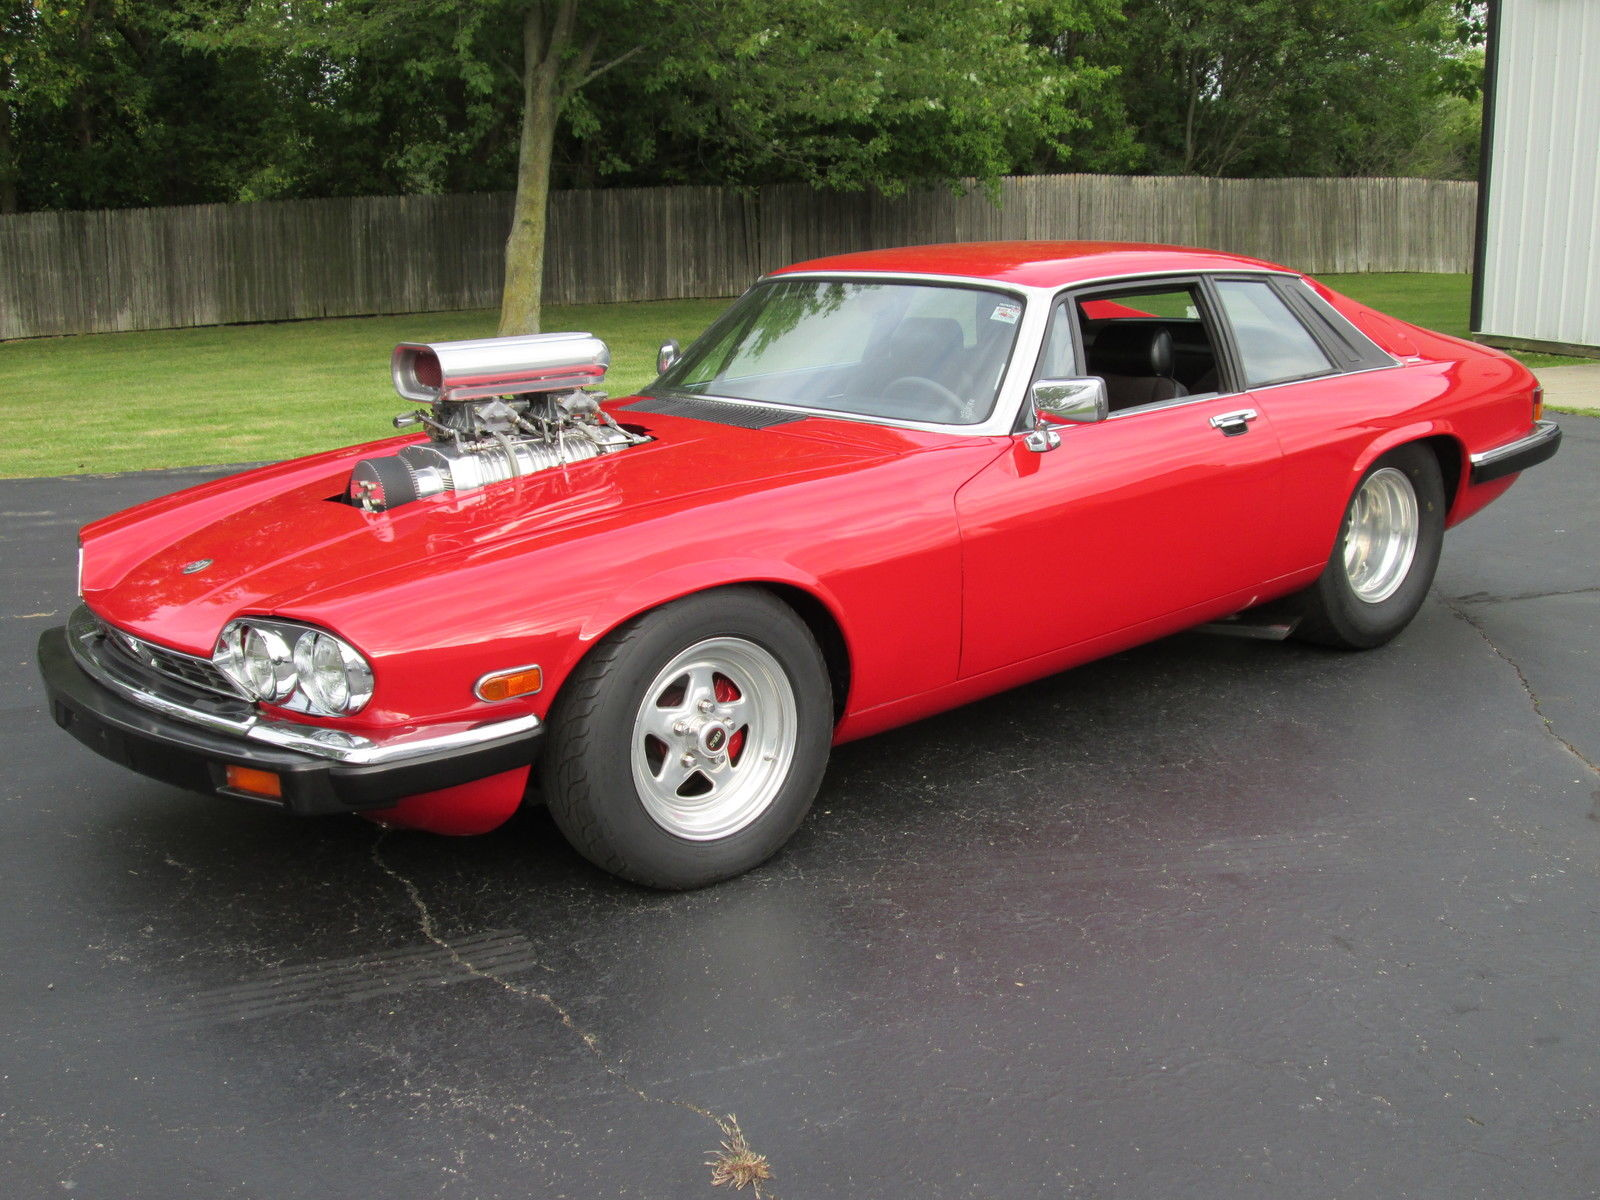 Pro Street Jaguar XJS is Street Legal, Powered by Blown